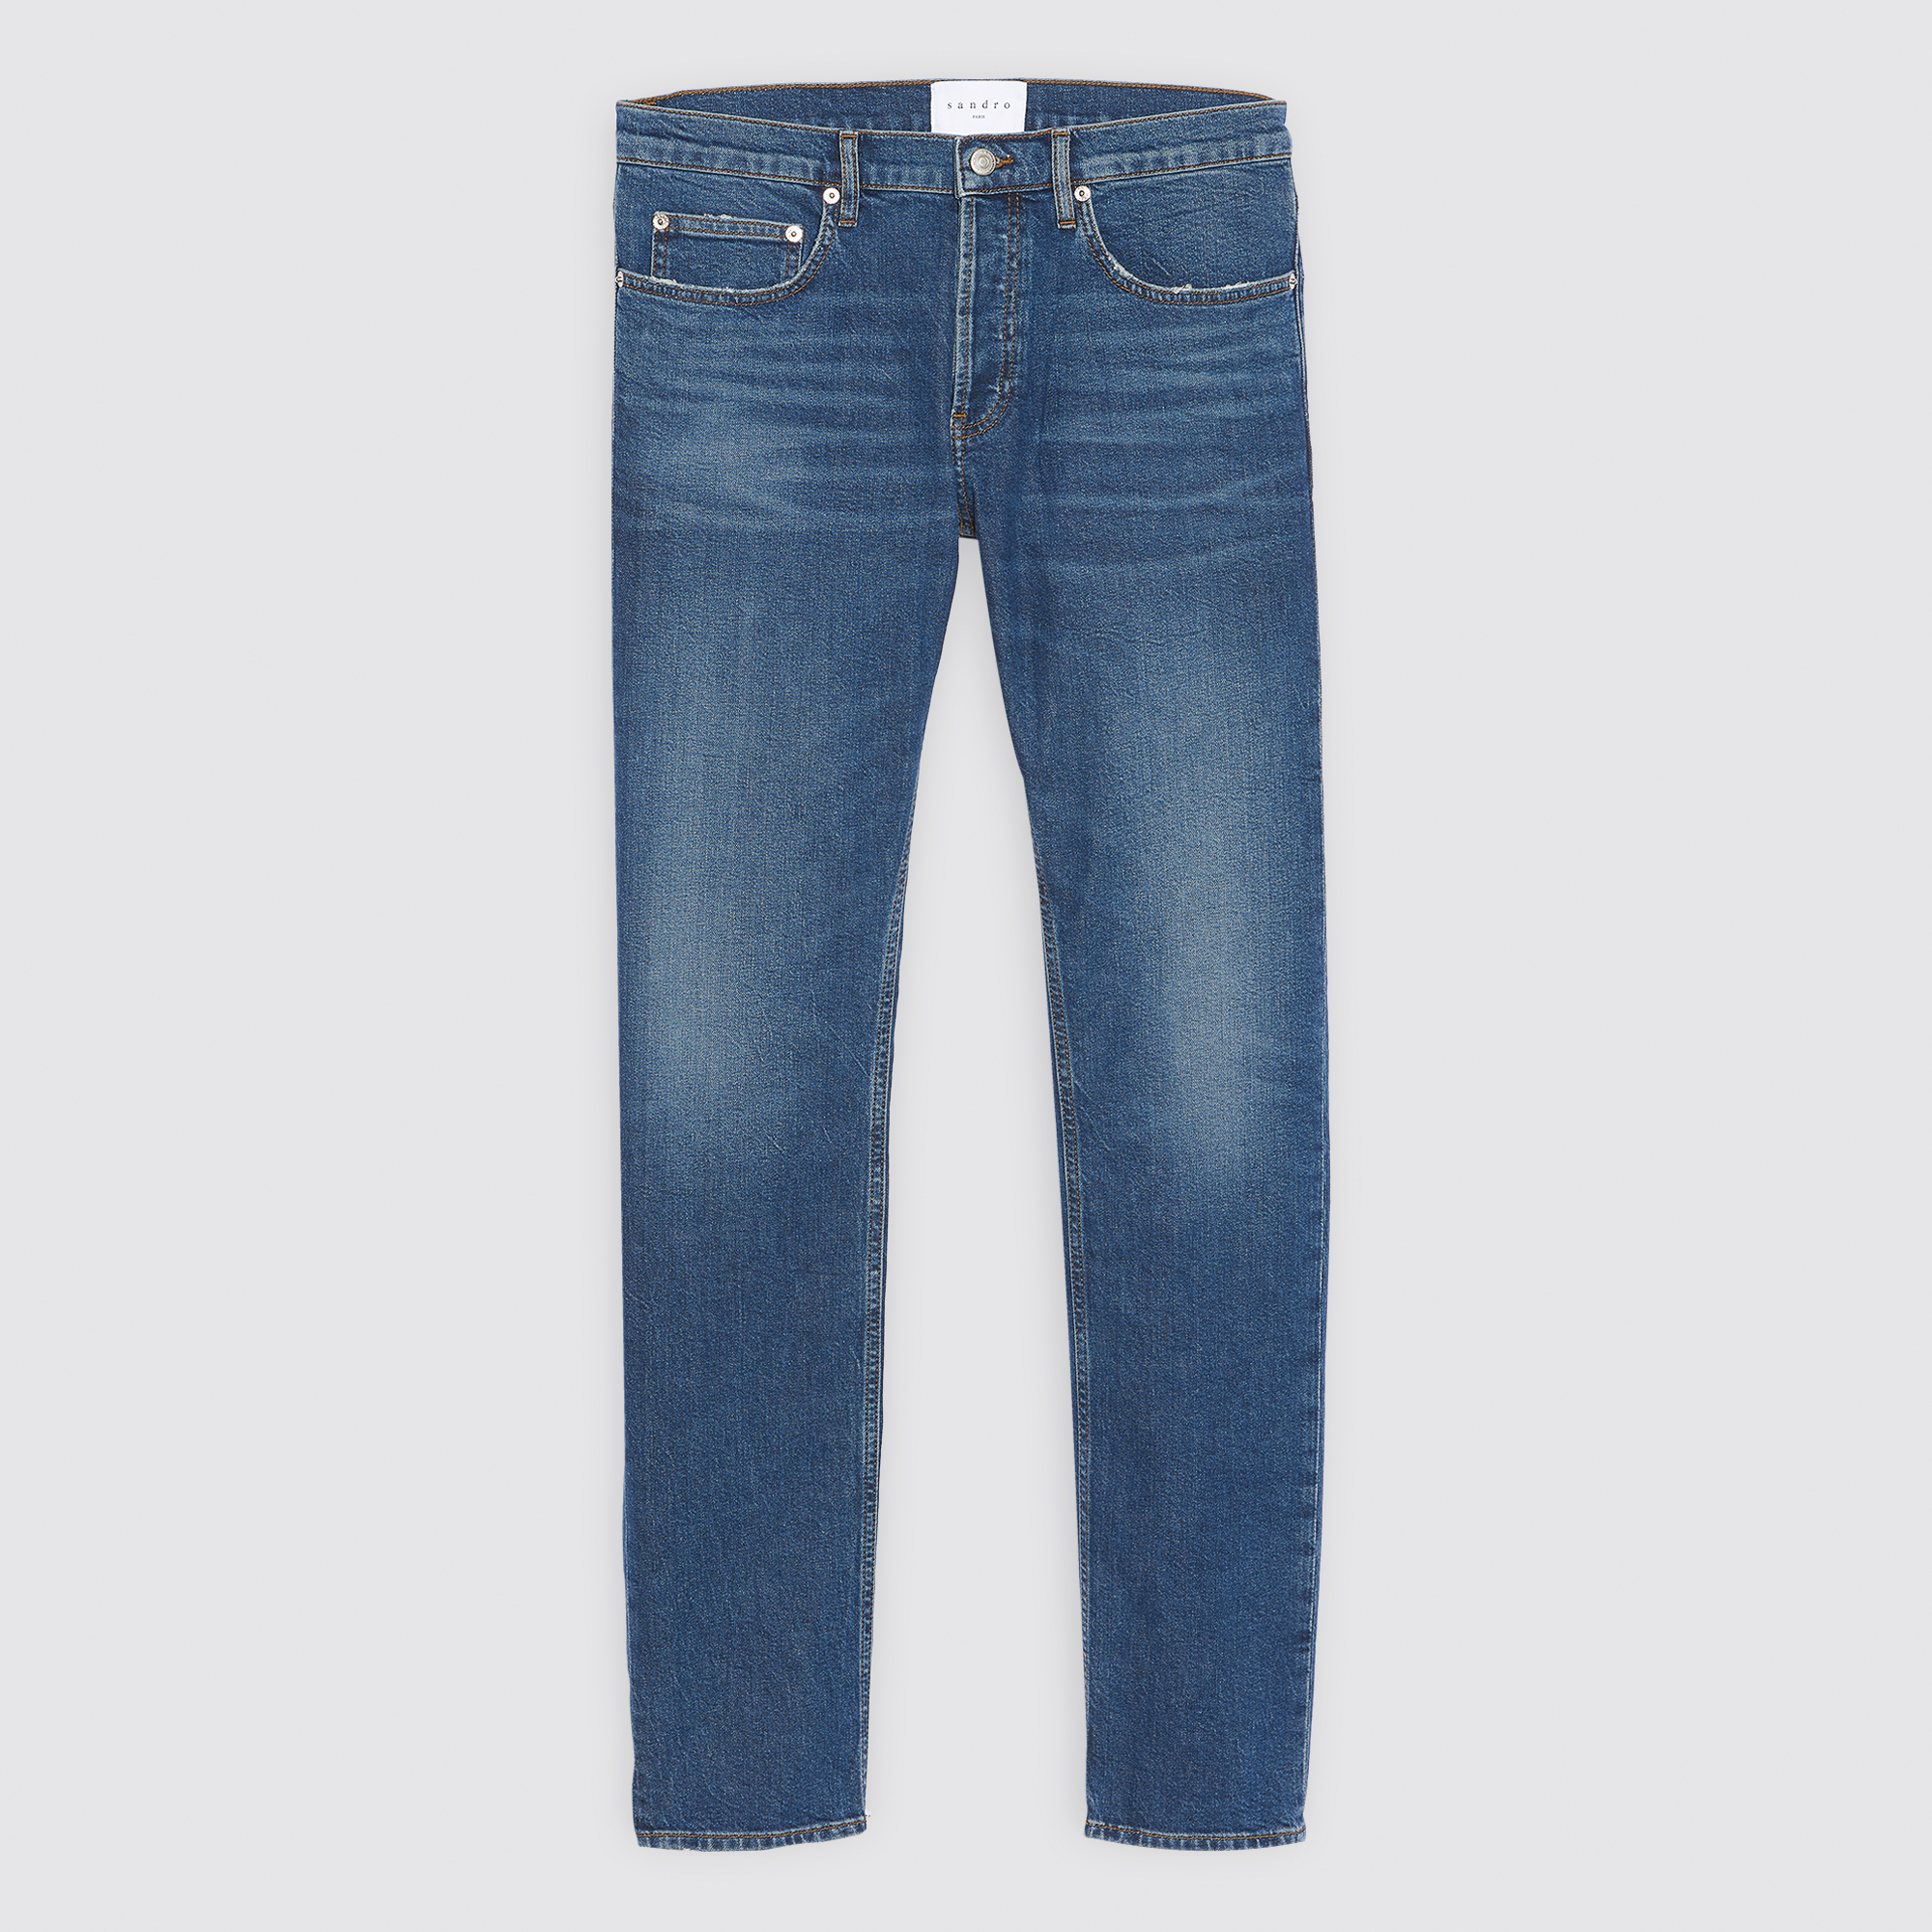 Jeans blu in denim linea dritta : Jeans colore Blue Vintage - Denim